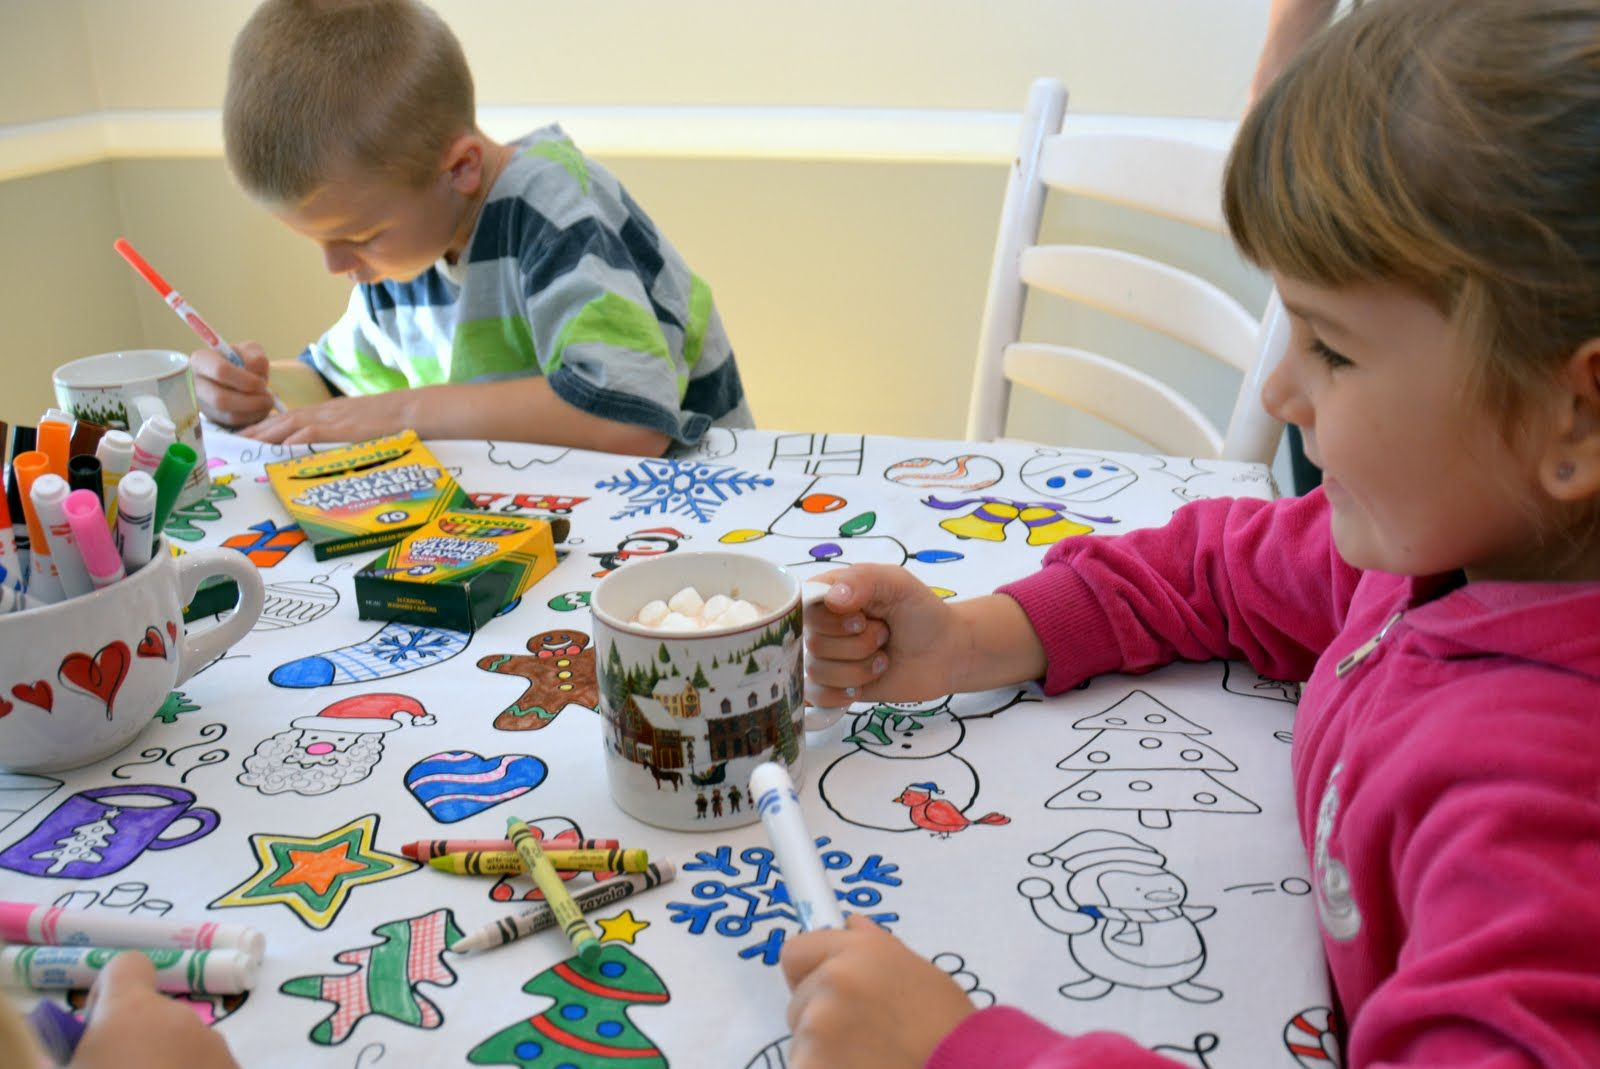 Baking Cookies While The Kids Color Awesome Business For Kids Holiday Tablecloths Mess Free Craft